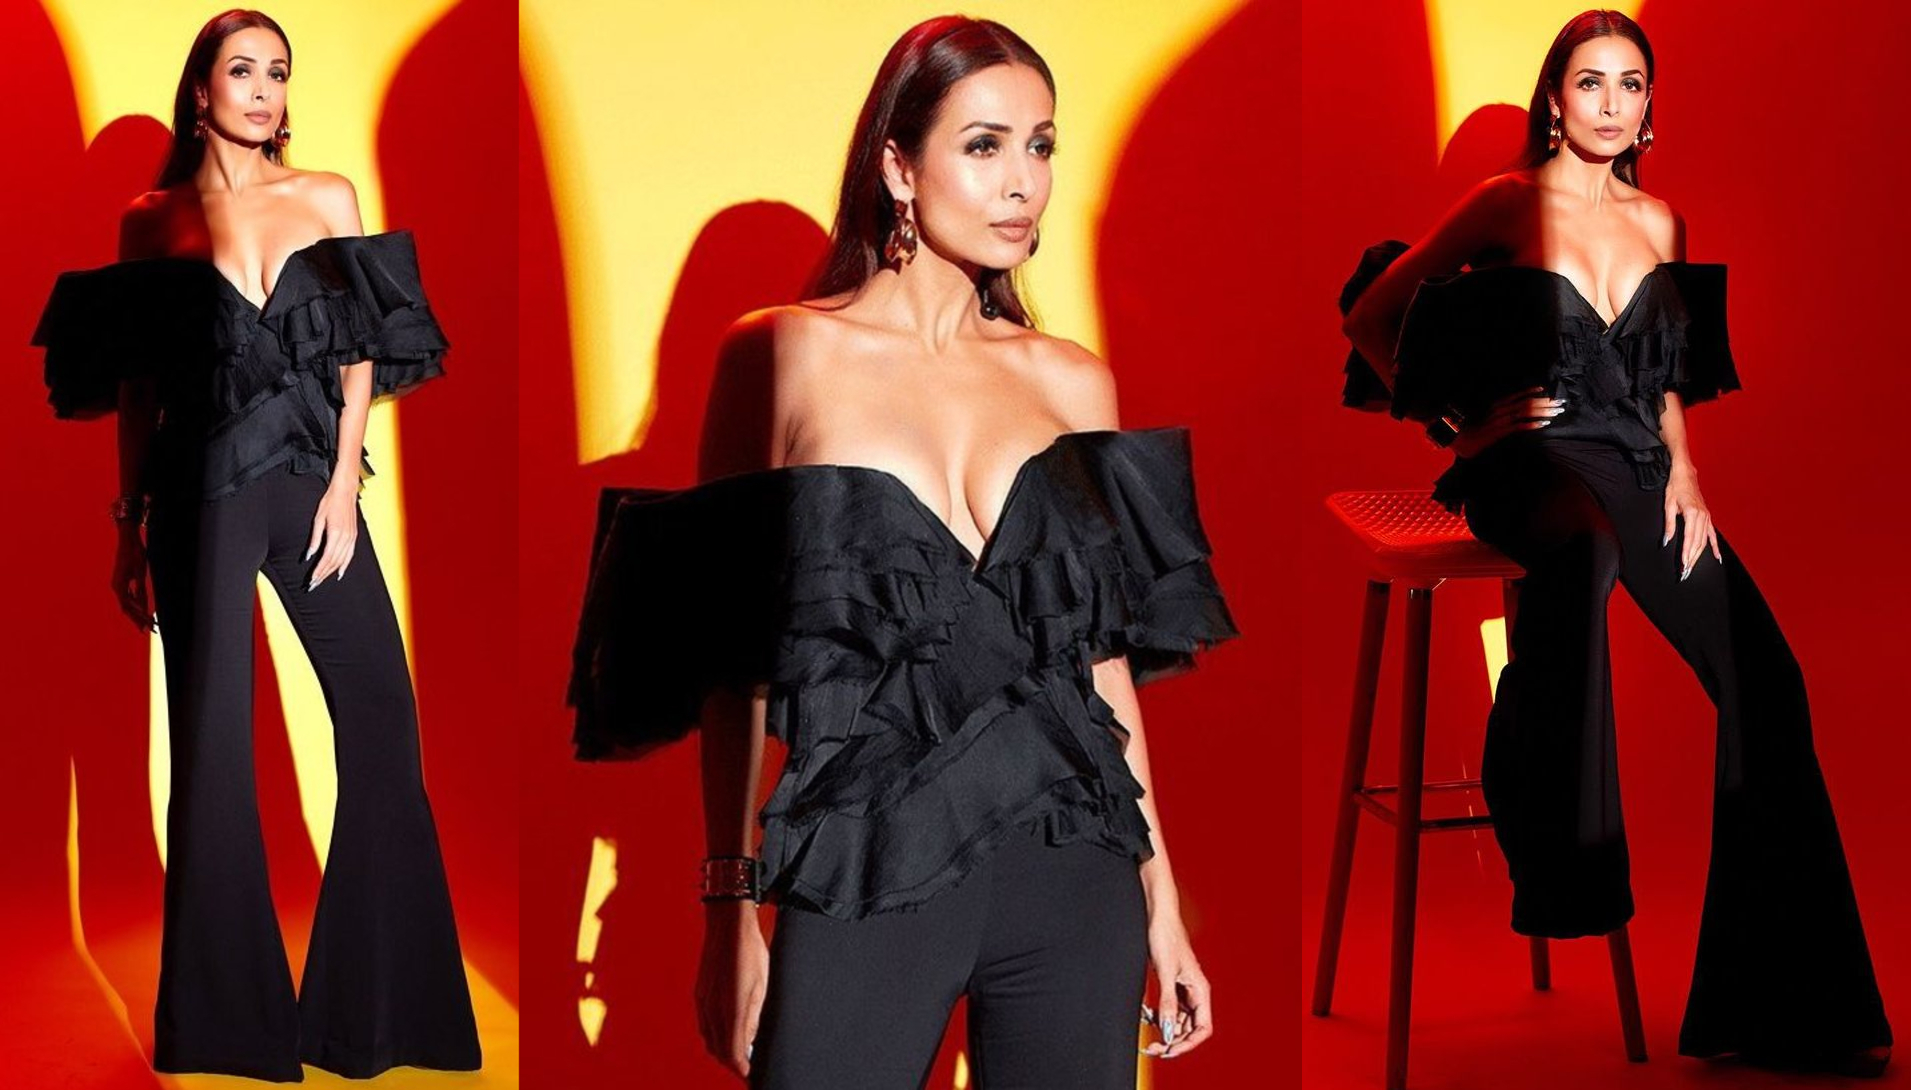 Malaika Arora in all-black off-shoulder top and flare pants adds her sexy charm to shoot